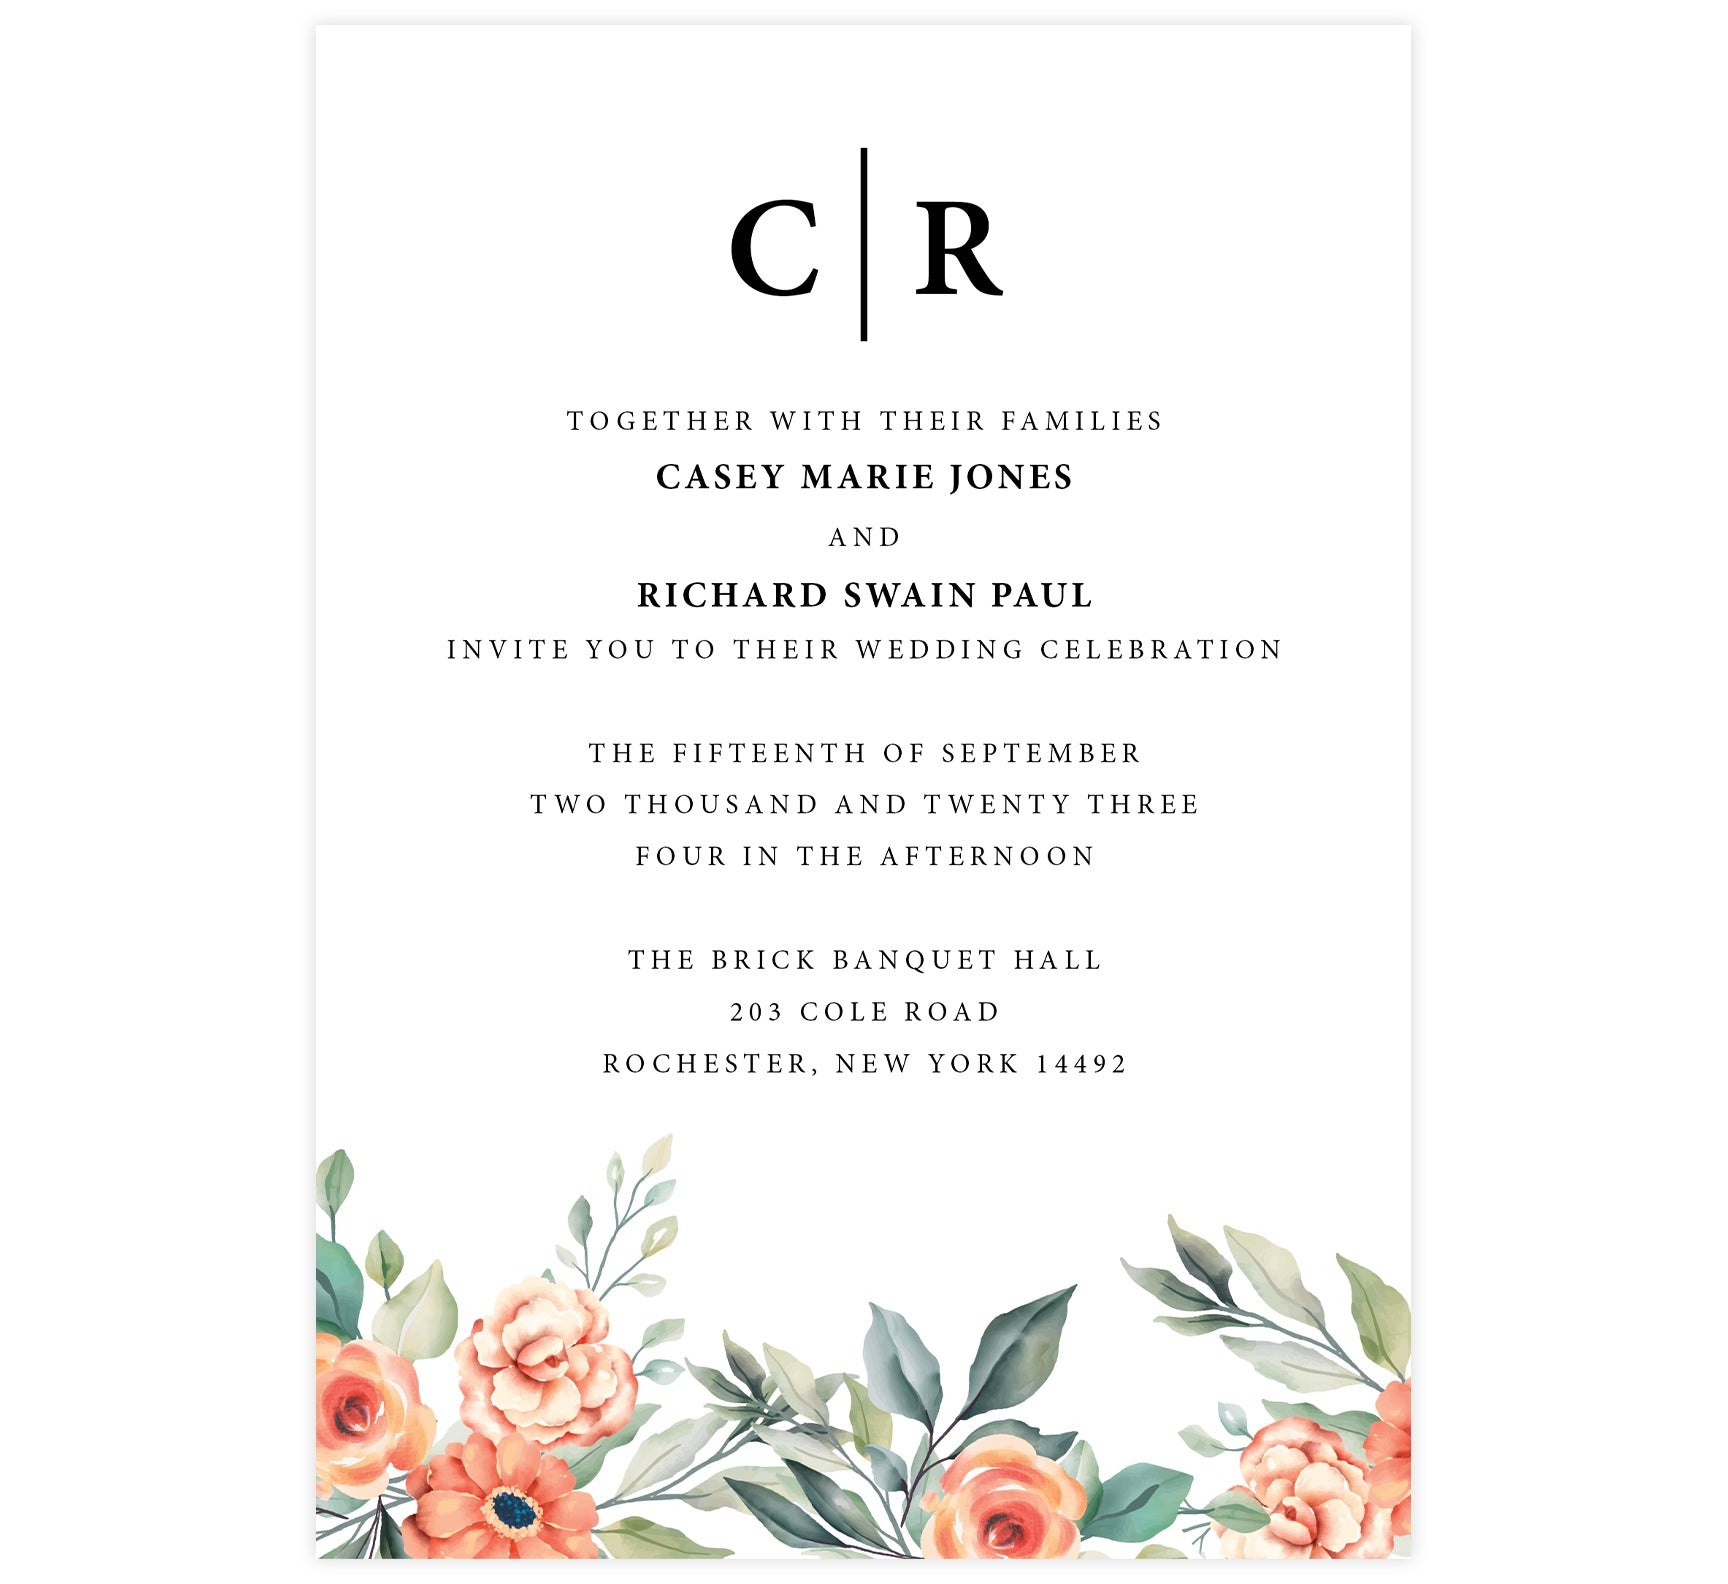 Coral Flowers wedding invitation; white background with black text and coral flowers at the bottom edge